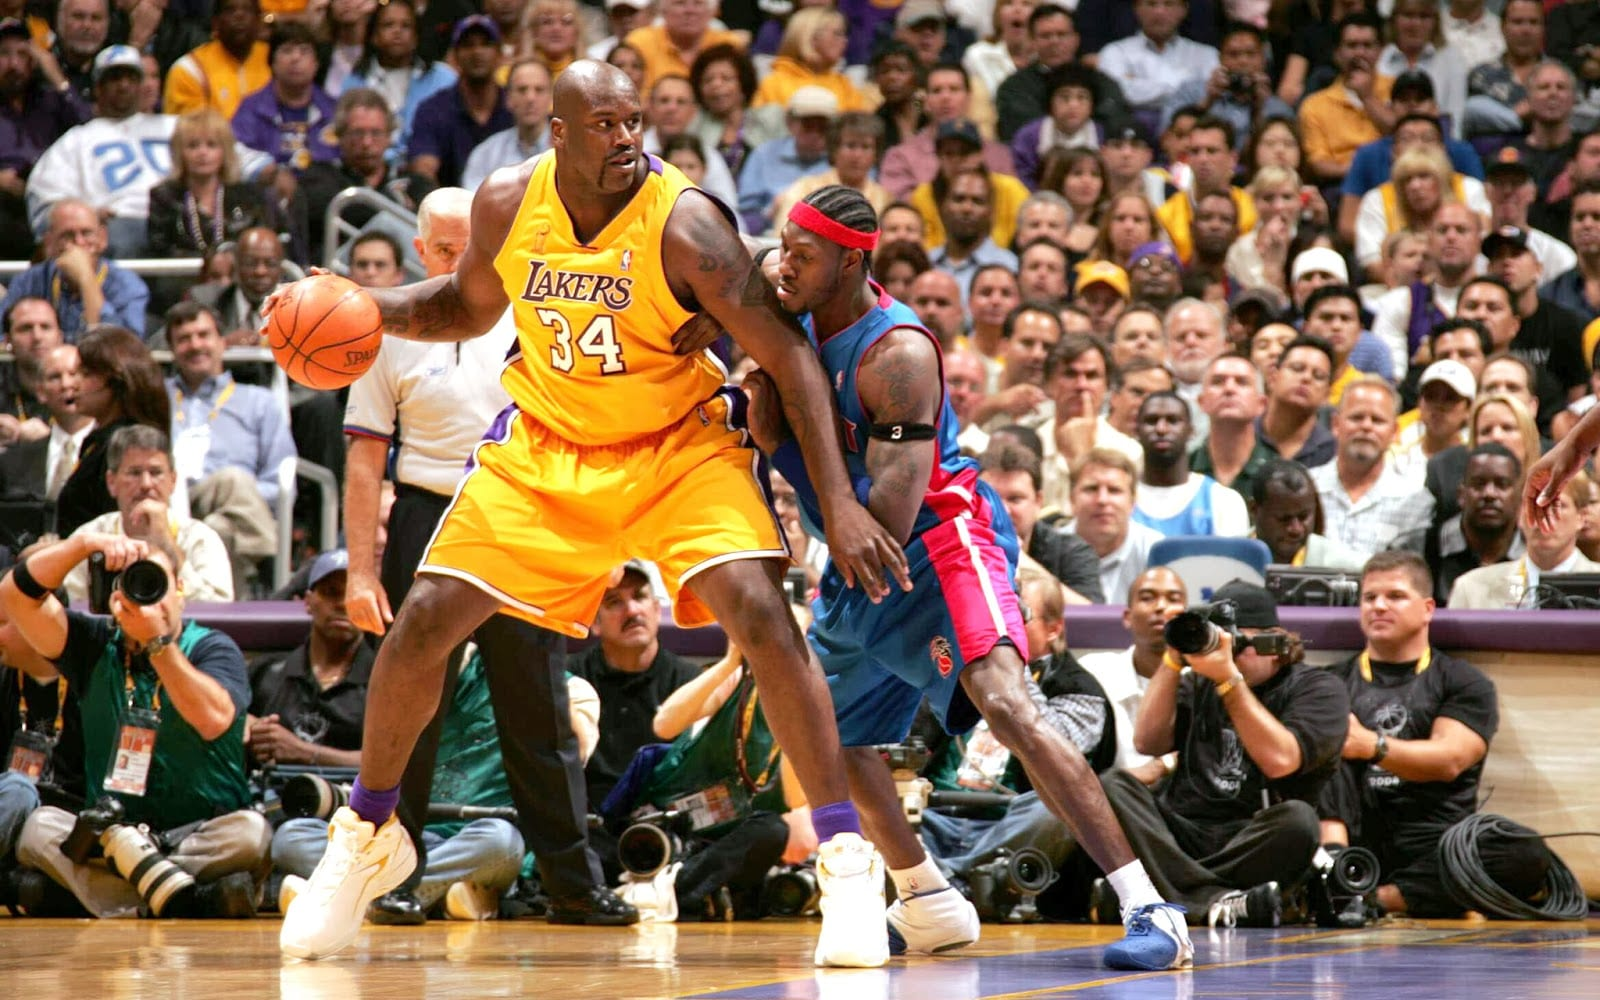 2004 NBA Finals Flashback: LA Lakers vs Detroit Pistons